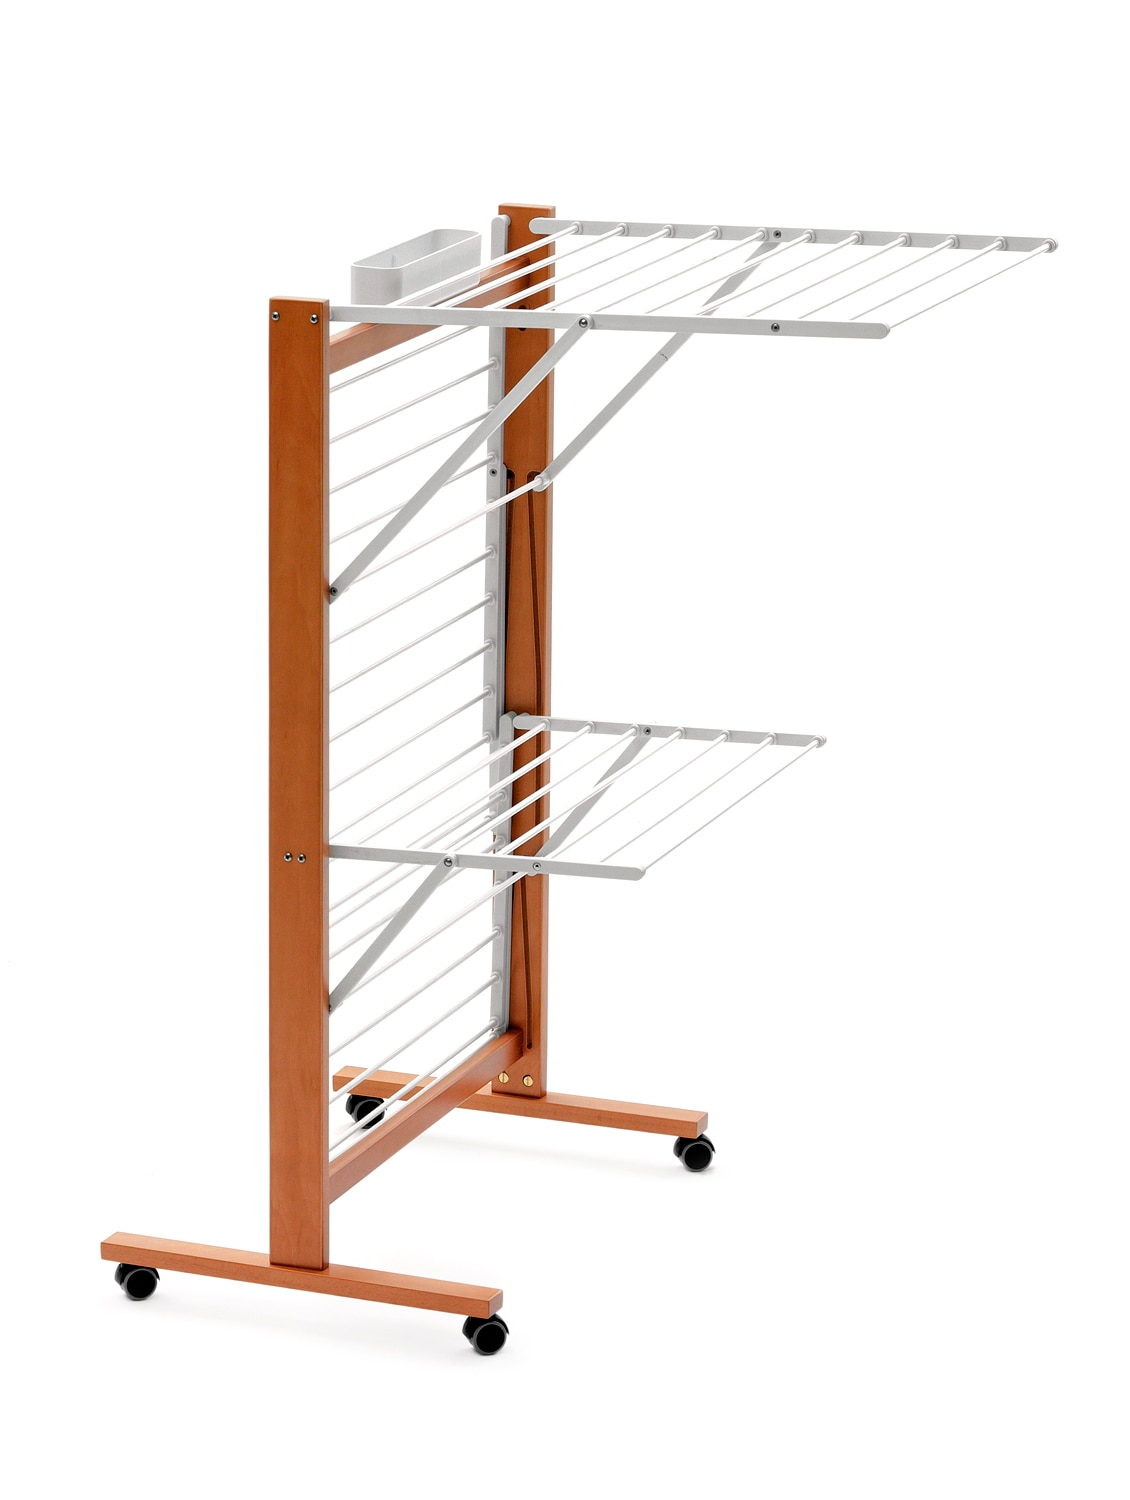 Buy Beechwood Foldable Clothes Drying Rack by Arredamenti - Online ...